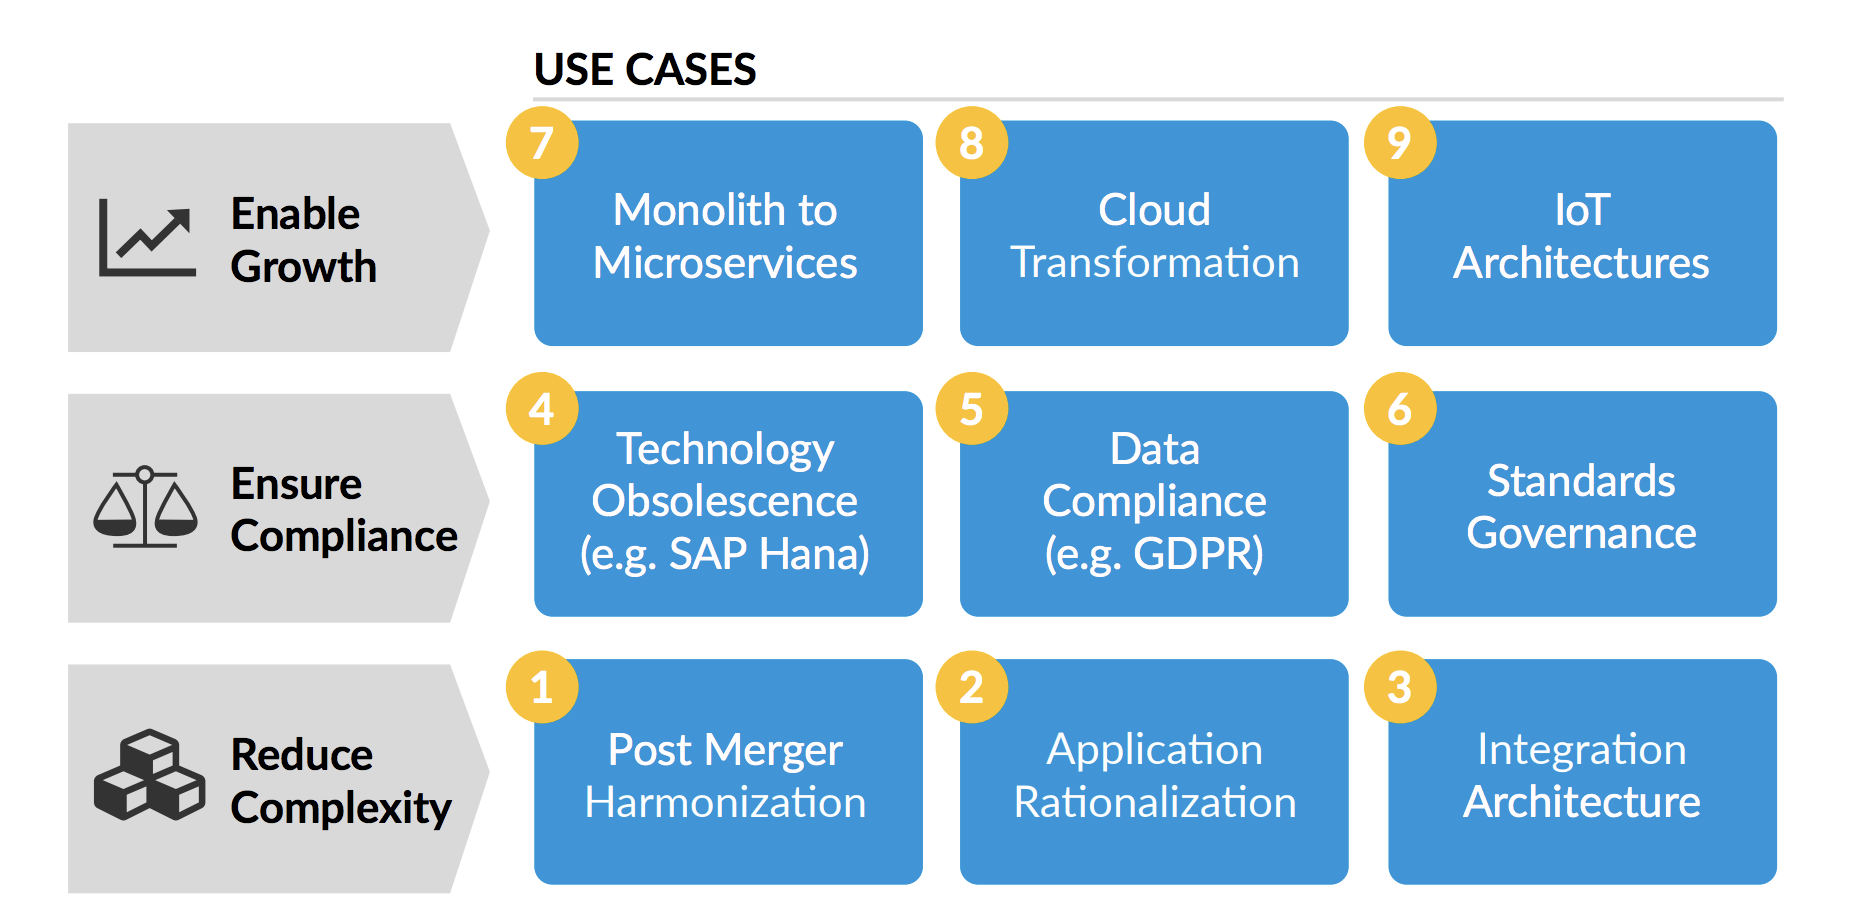 Key use cases for enterprise architecture